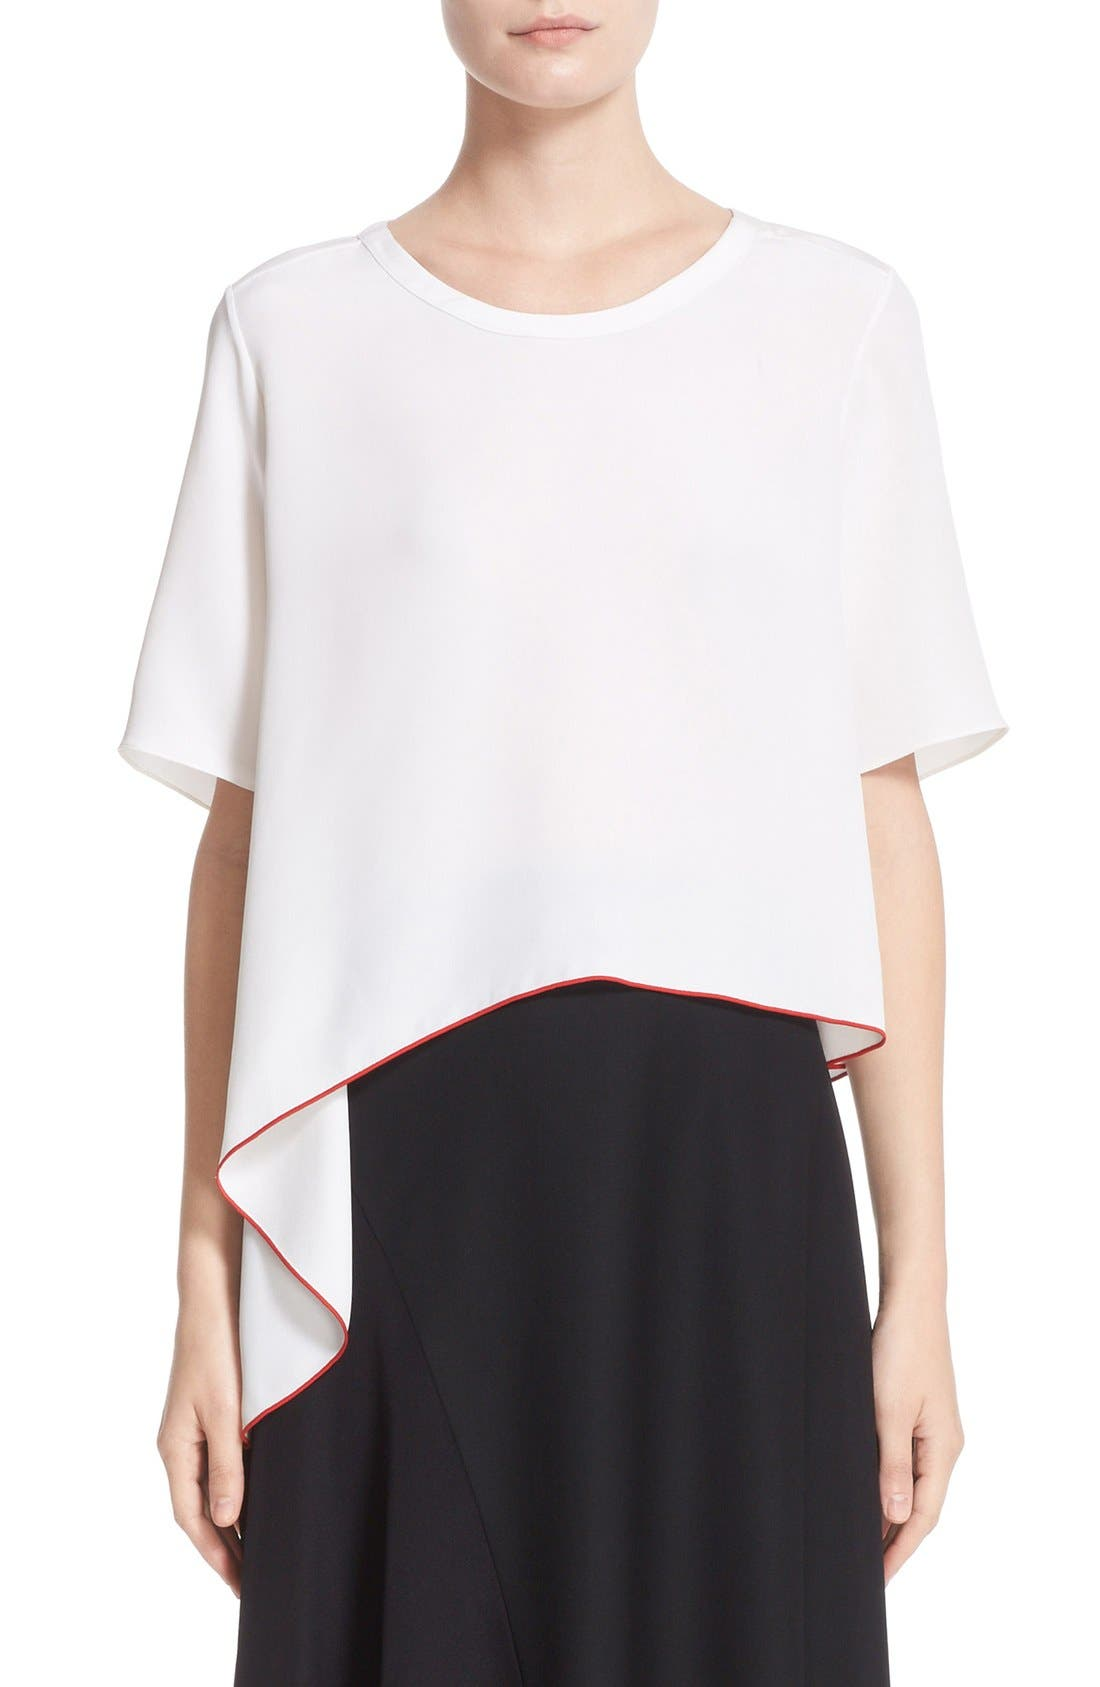 Alternate Image 1 Selected - Colovos Asymmetrical Silk Tee